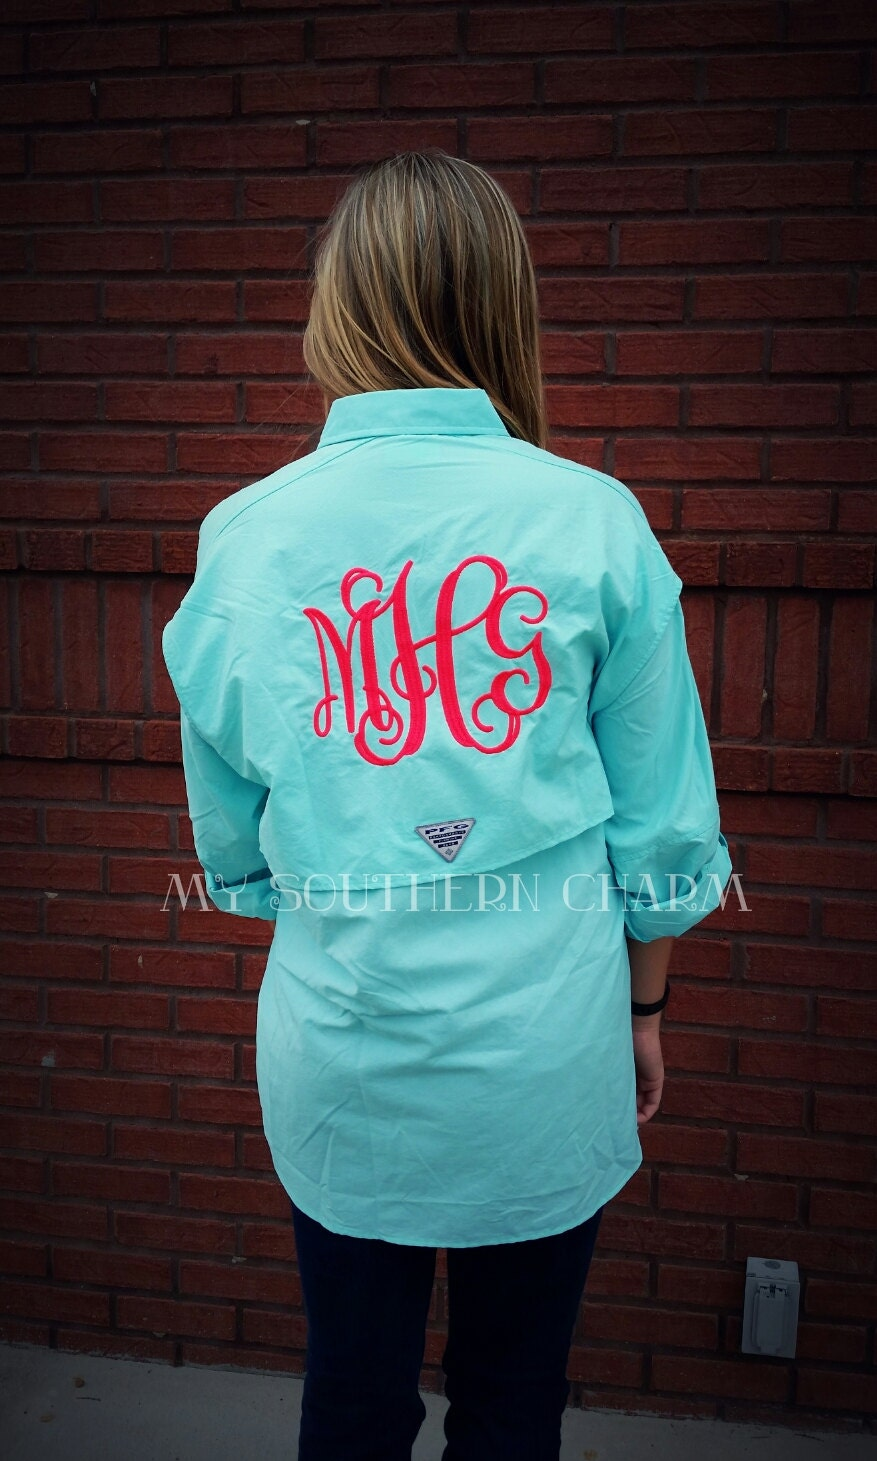 Monogram pfg columbia fishing shirt cover up bathing suit for Monogram fishing shirt